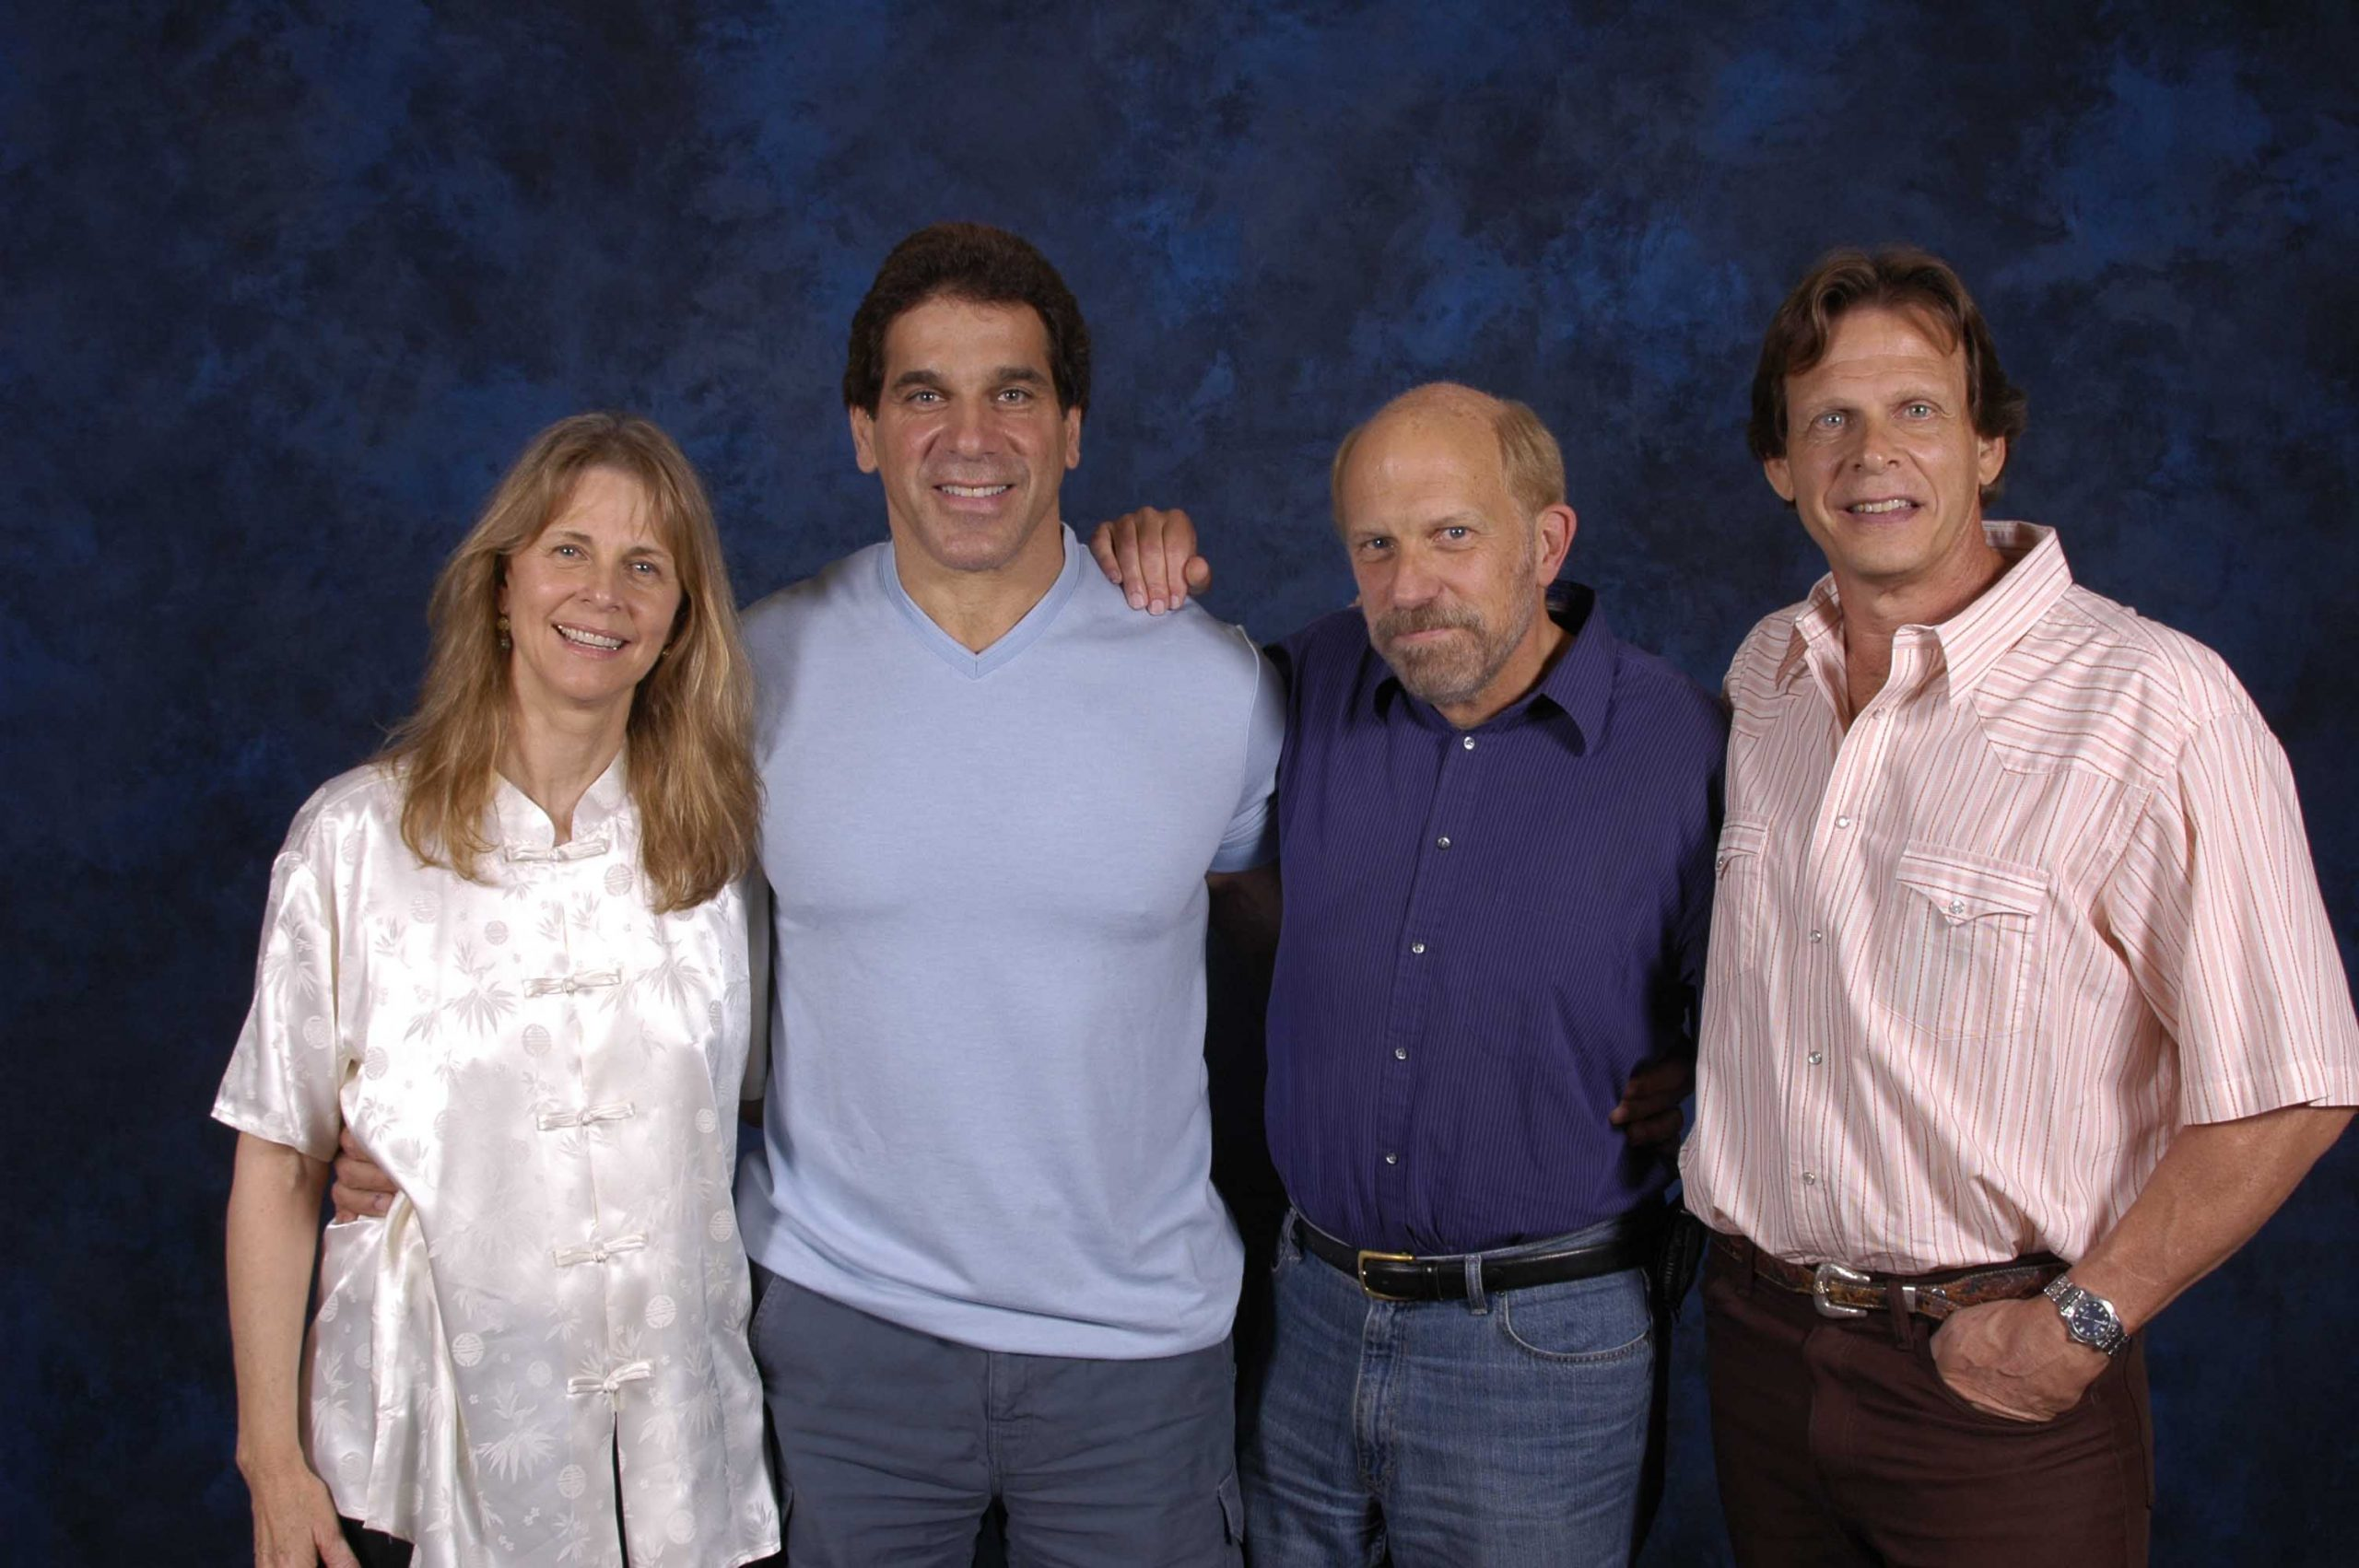 Three of Kenny's stars: Bionic Woman Lindsay Wagner, Incredible Hulk Lou Ferrigno, and V's Marc Singer